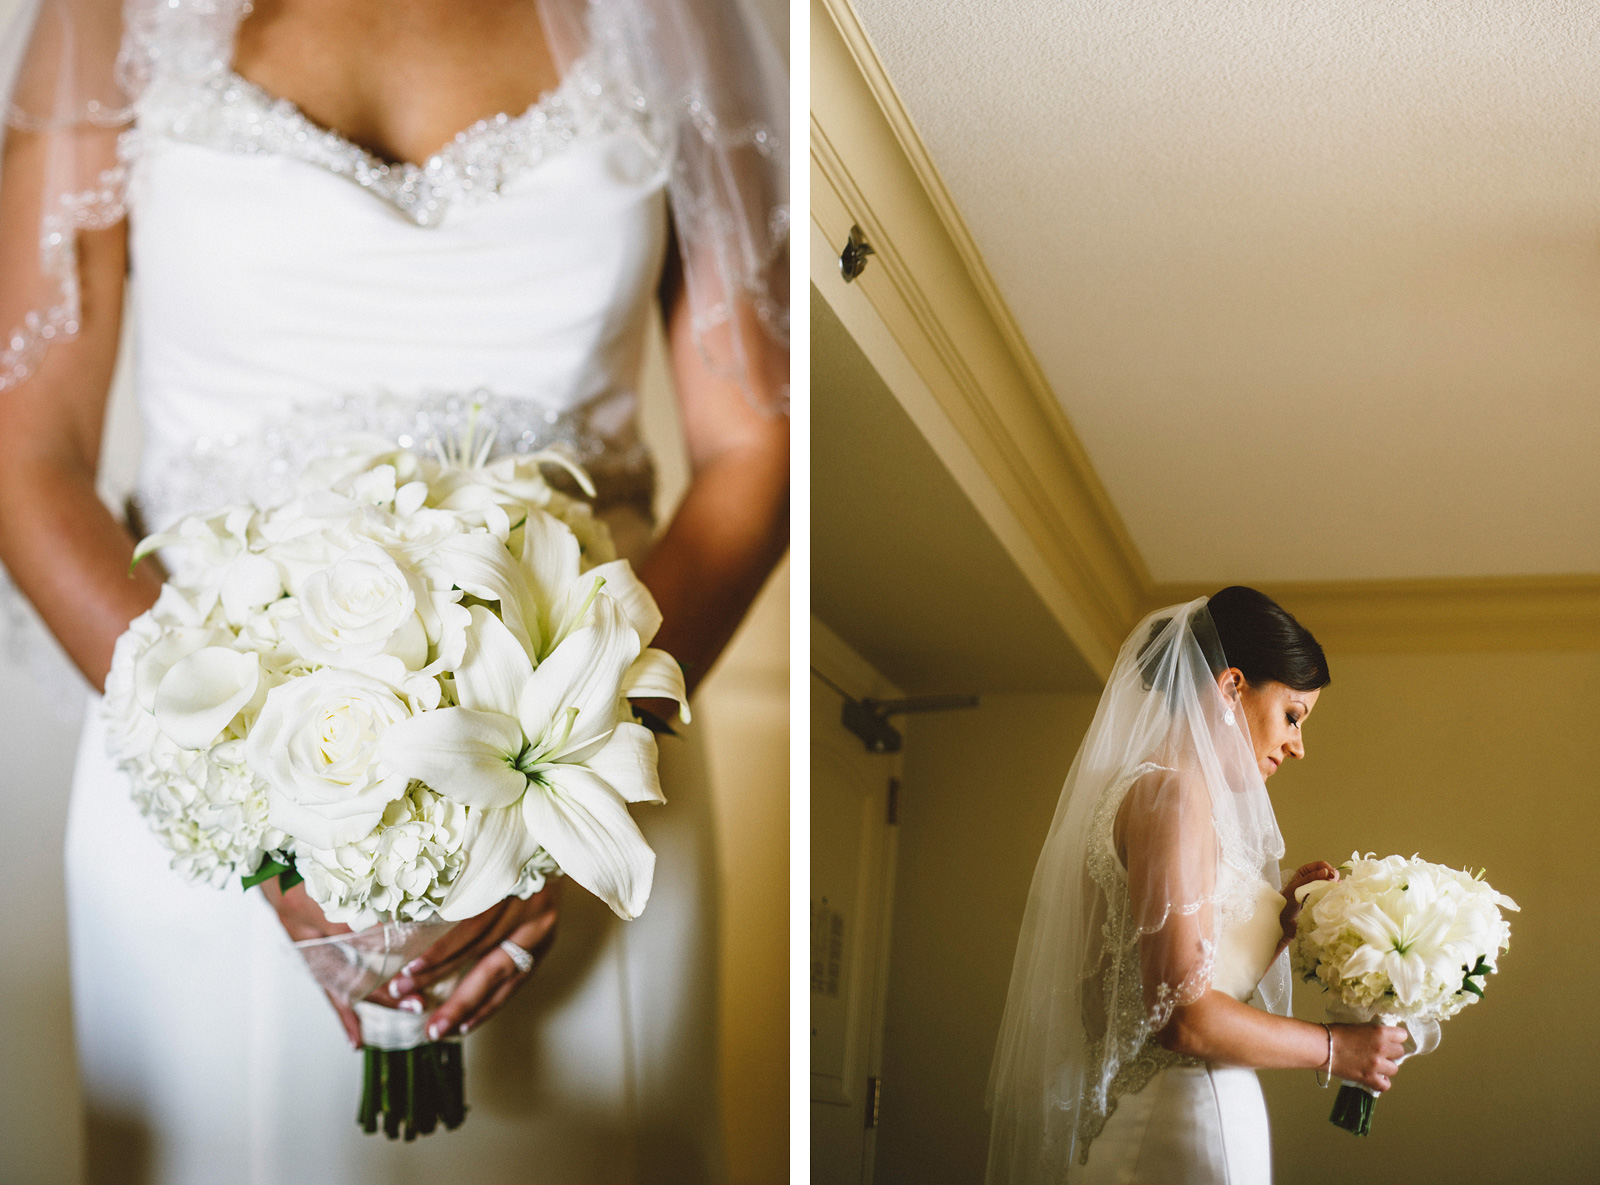 Bridal portraits in her hotel suite | Sacramento Firehouse Wedding